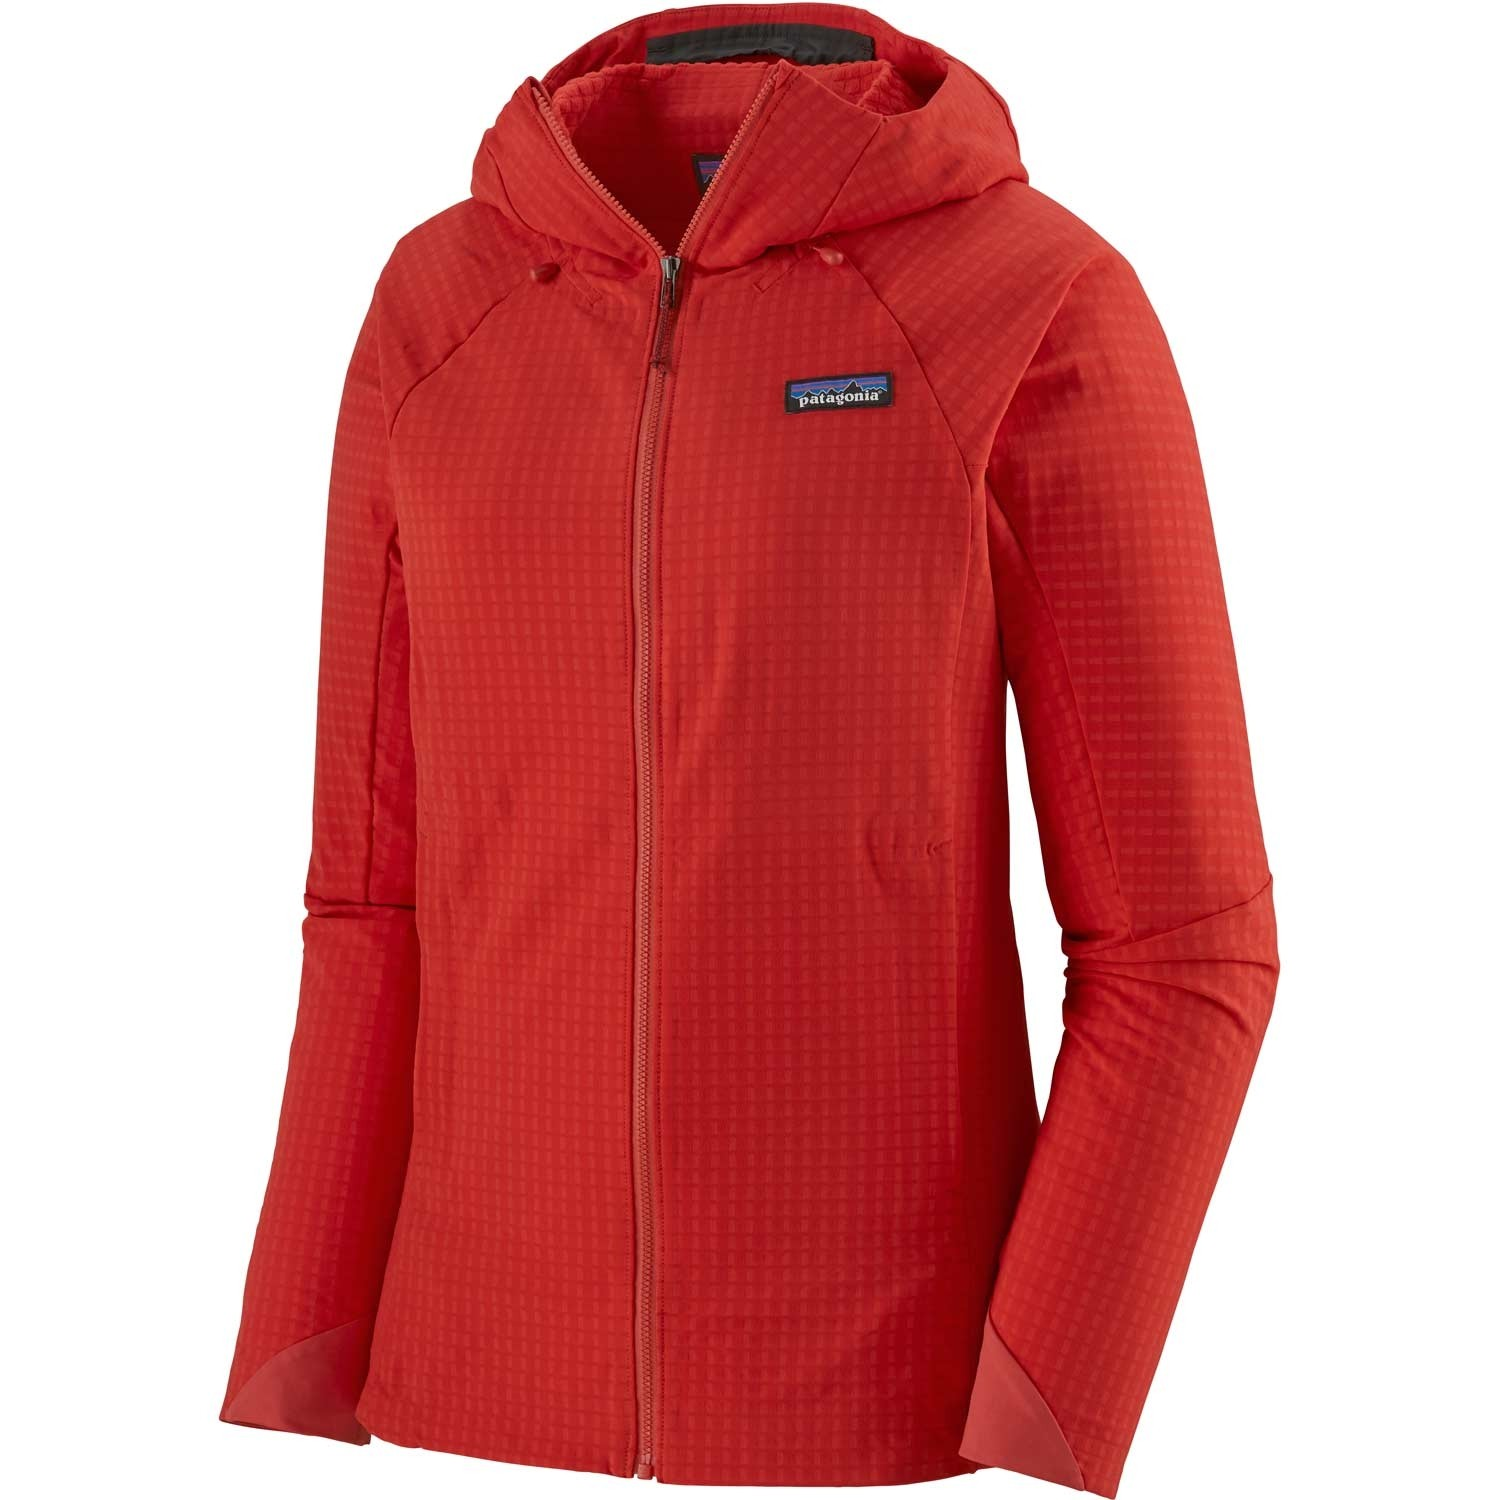 Patagonia R1 TechFace Hoody - Women's - Catalan Coral